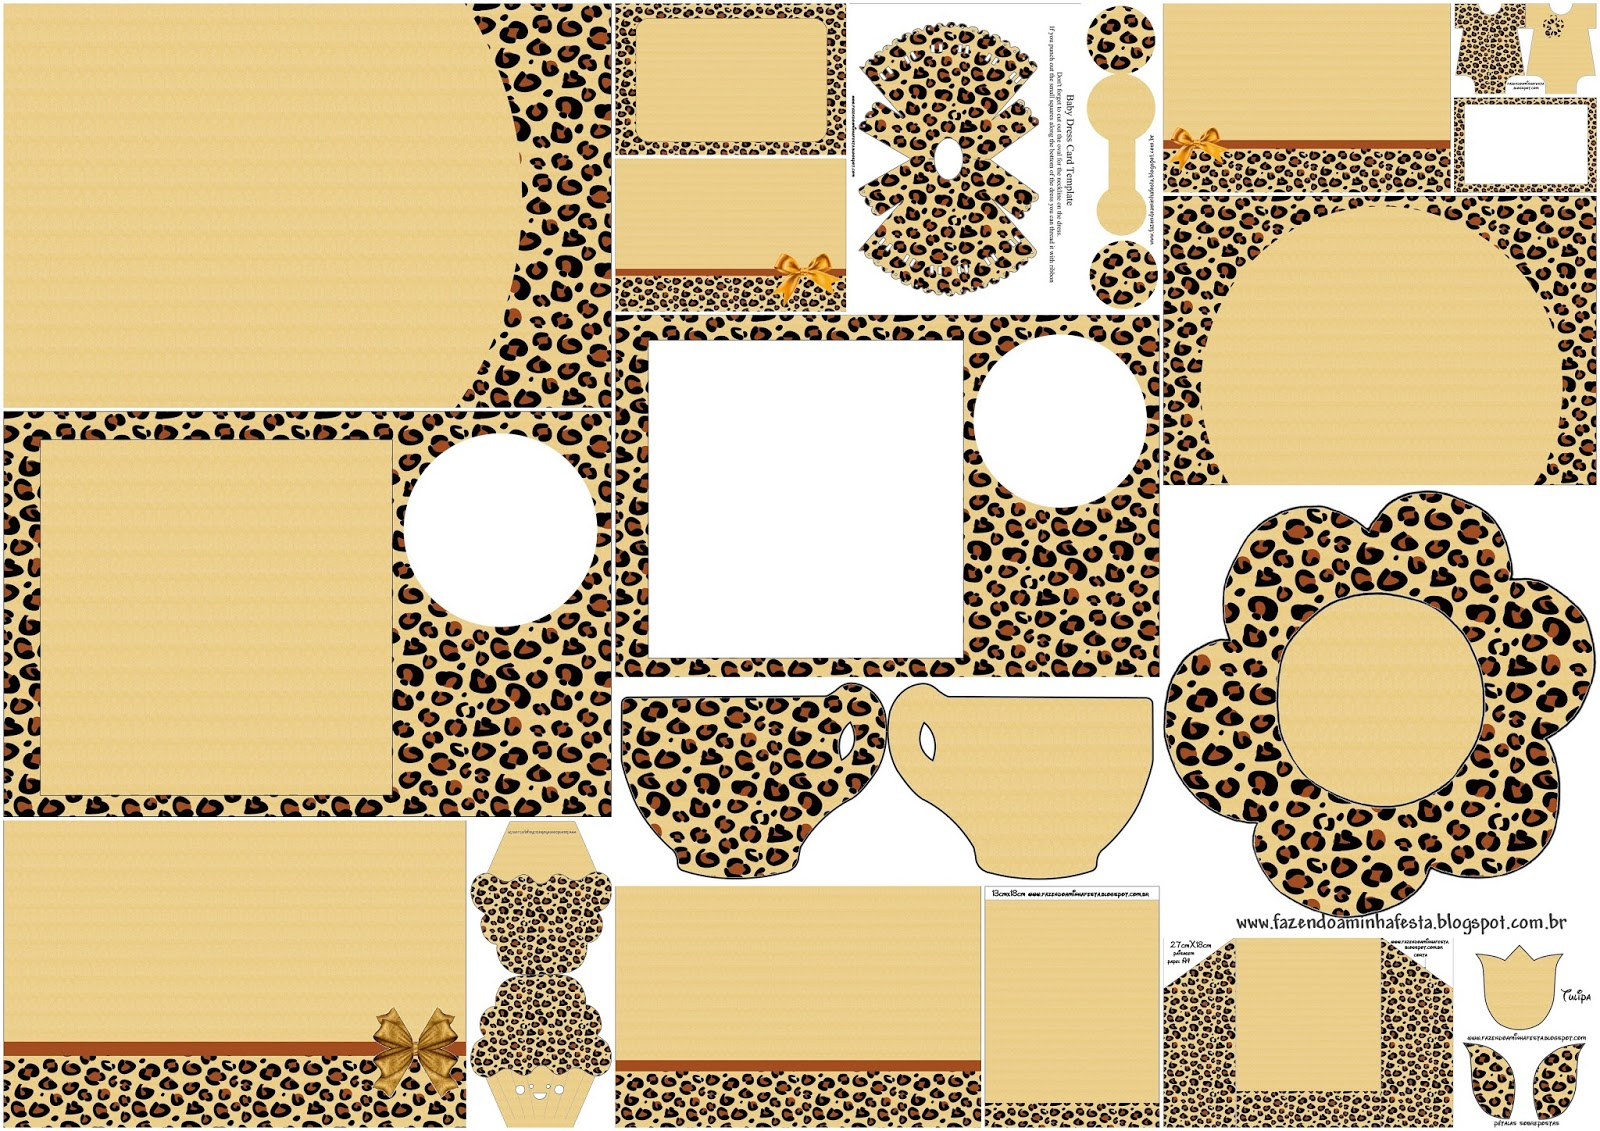 leopard print invitations templates - leopard prints free printable invitations oh my fiesta